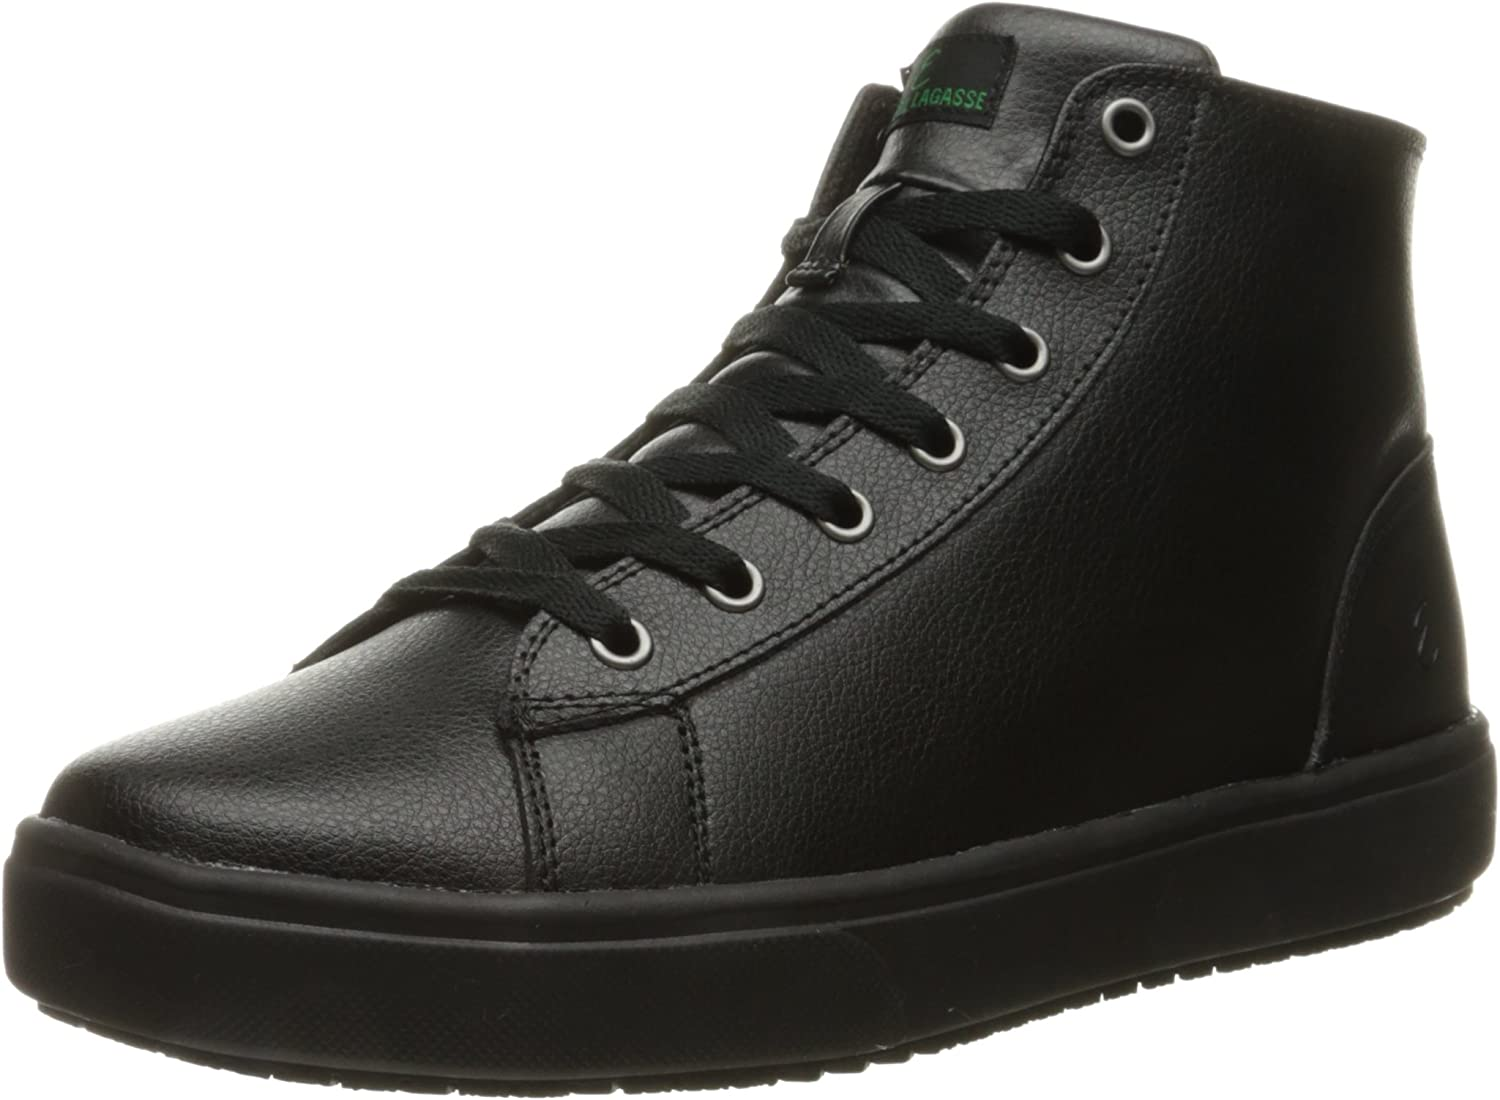 Emeril Lagasse Womens Read Health Care&Food Service shoes